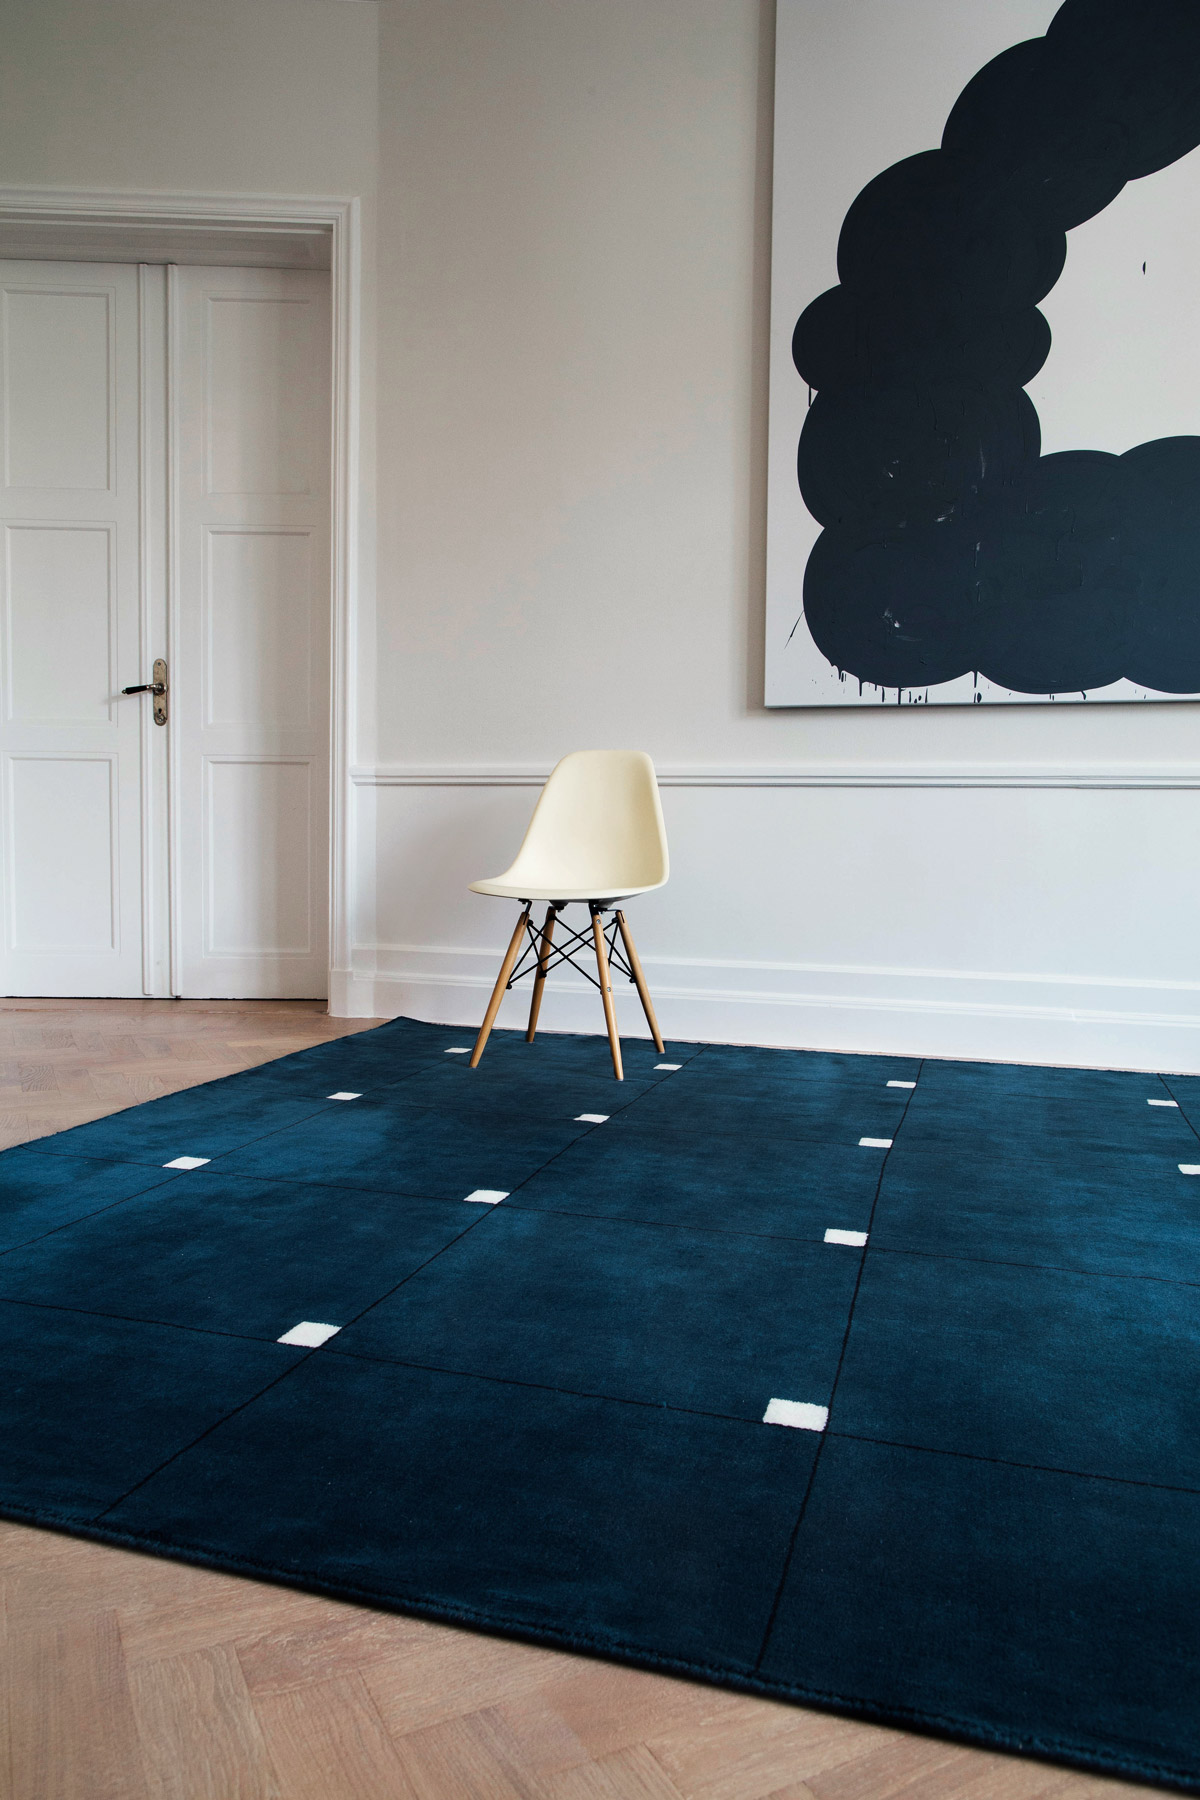 Plush rug Modern in Teal displayed in a bright, sunny living room decorated with a white chair.